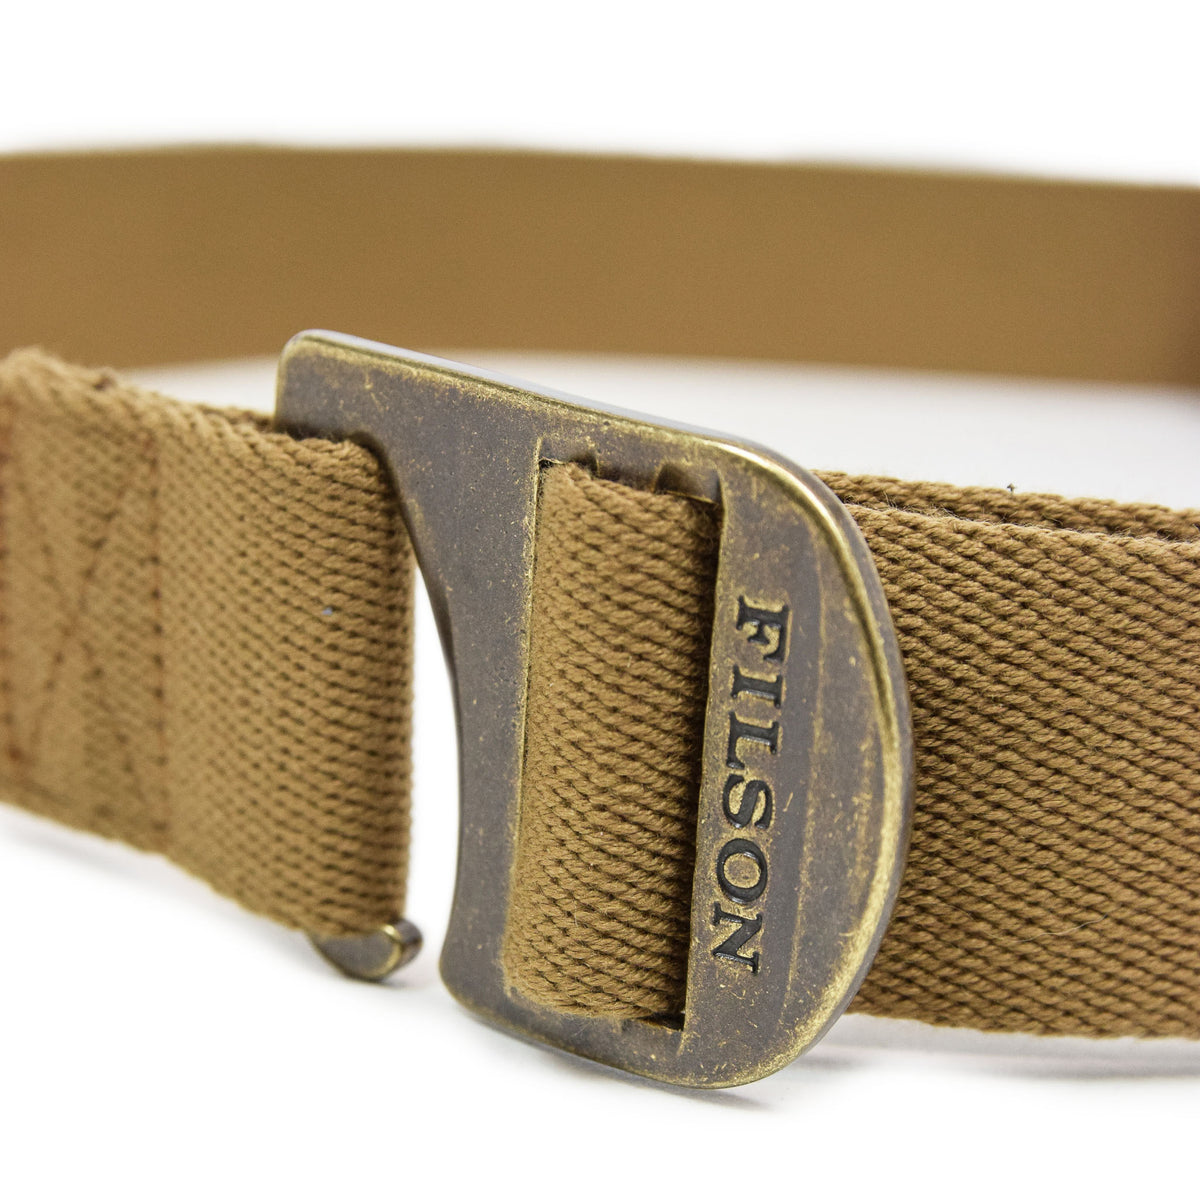 Filson Togiak Belt Tan buckle closed